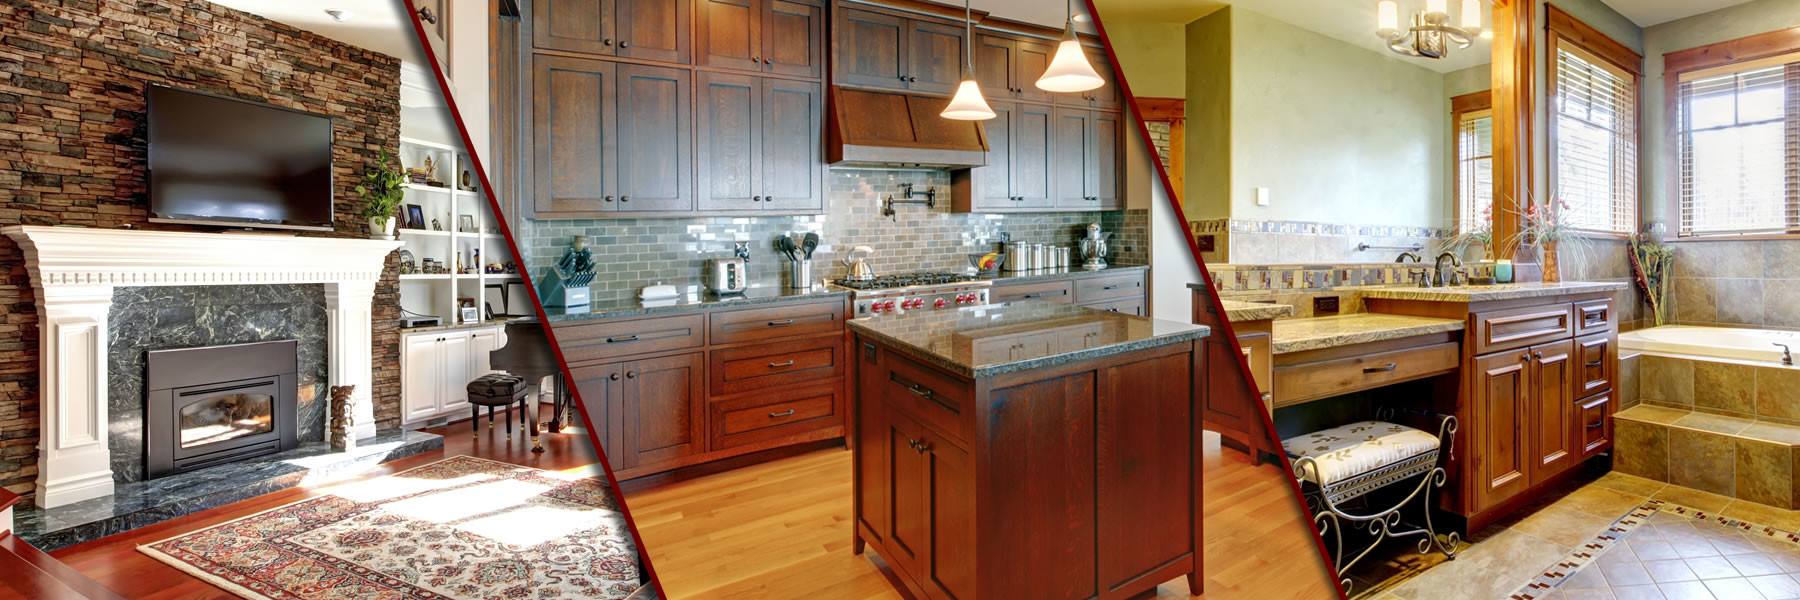 Orange County Bathroom Remodeling, Kitchen Remodeling, Home Design Build  Contractors